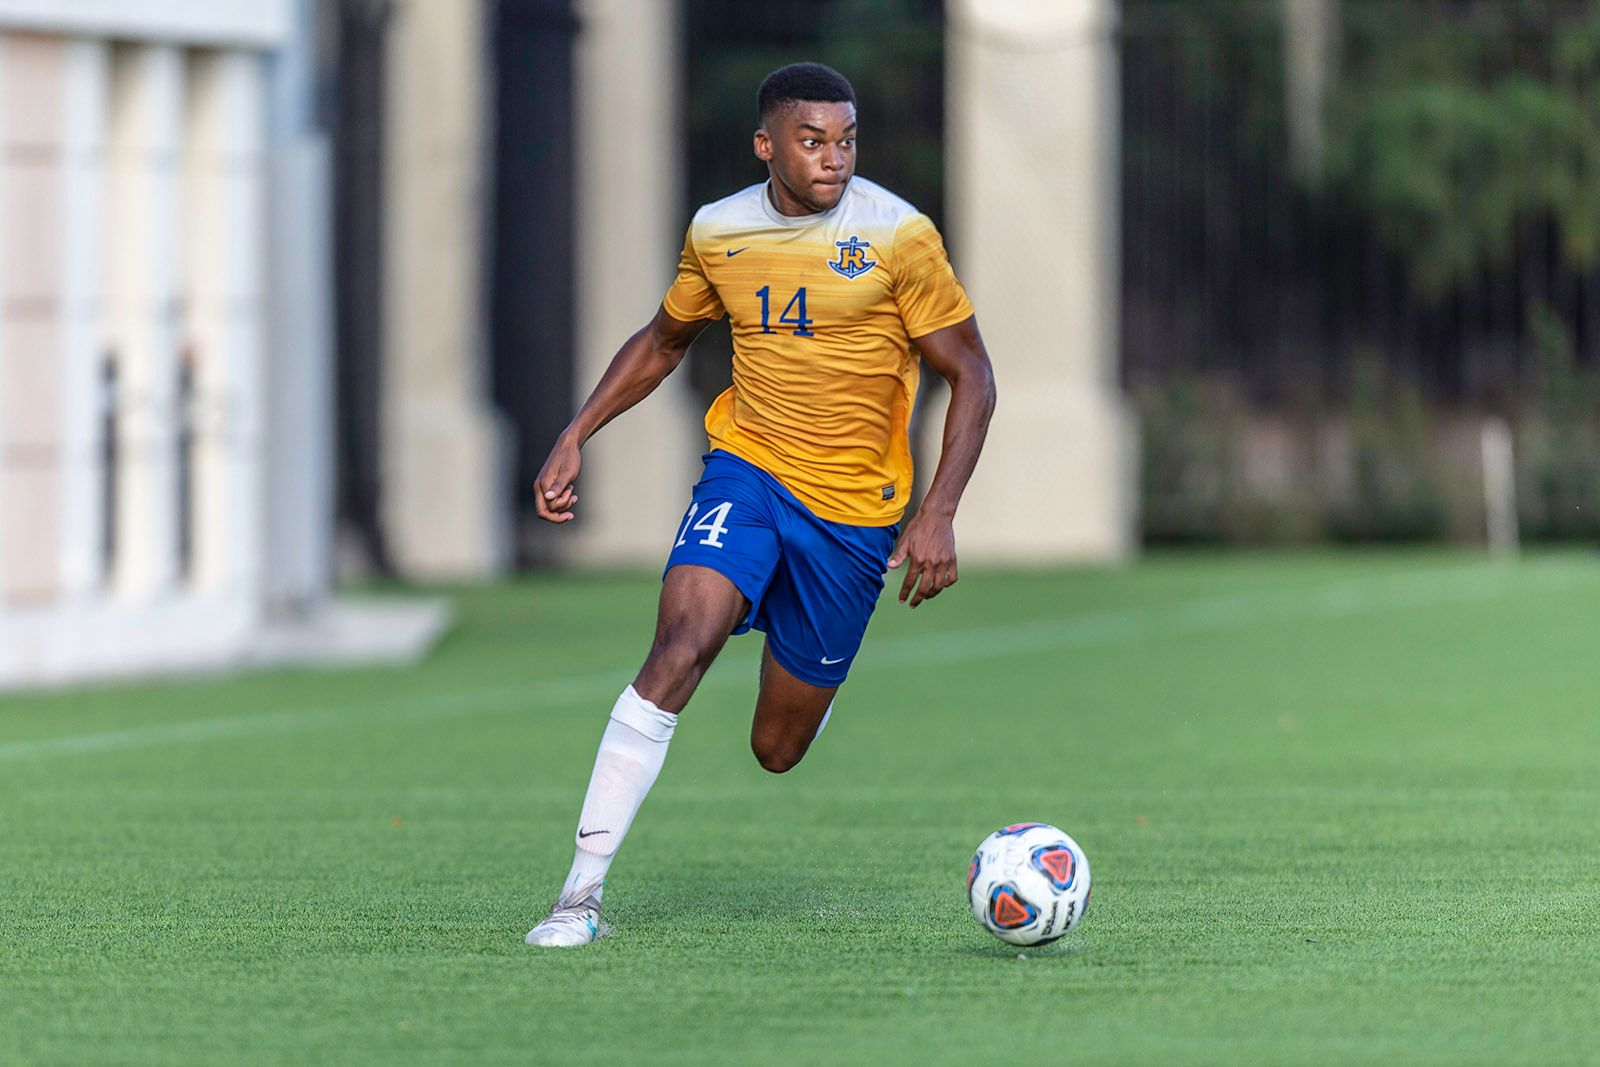 A Rollins student playing soccer.